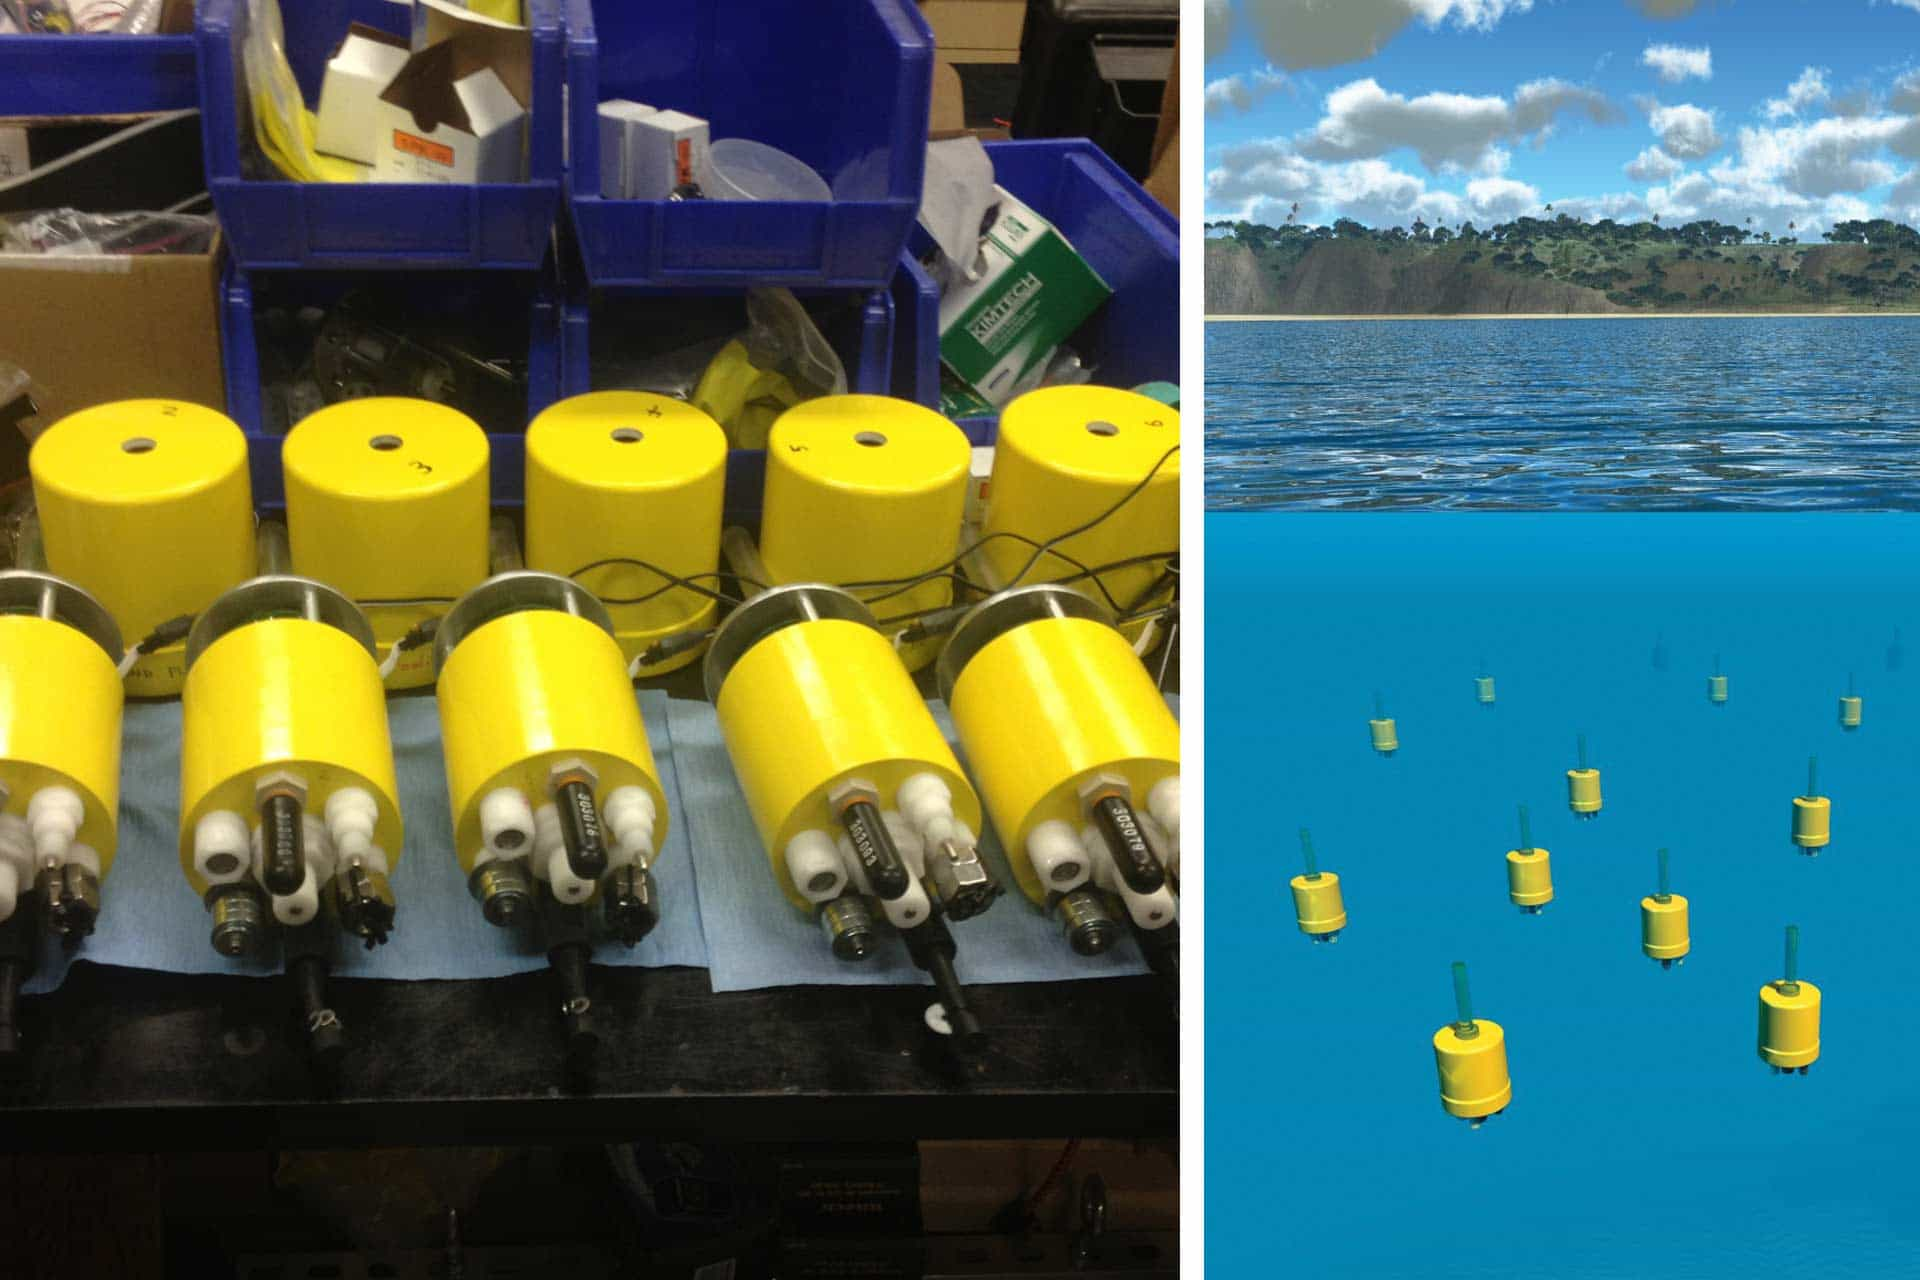 left, two rows of yellow cylindrical mini-autonomous underwater explorers; right, an artist's rendering of these devices floating on the ocean surface